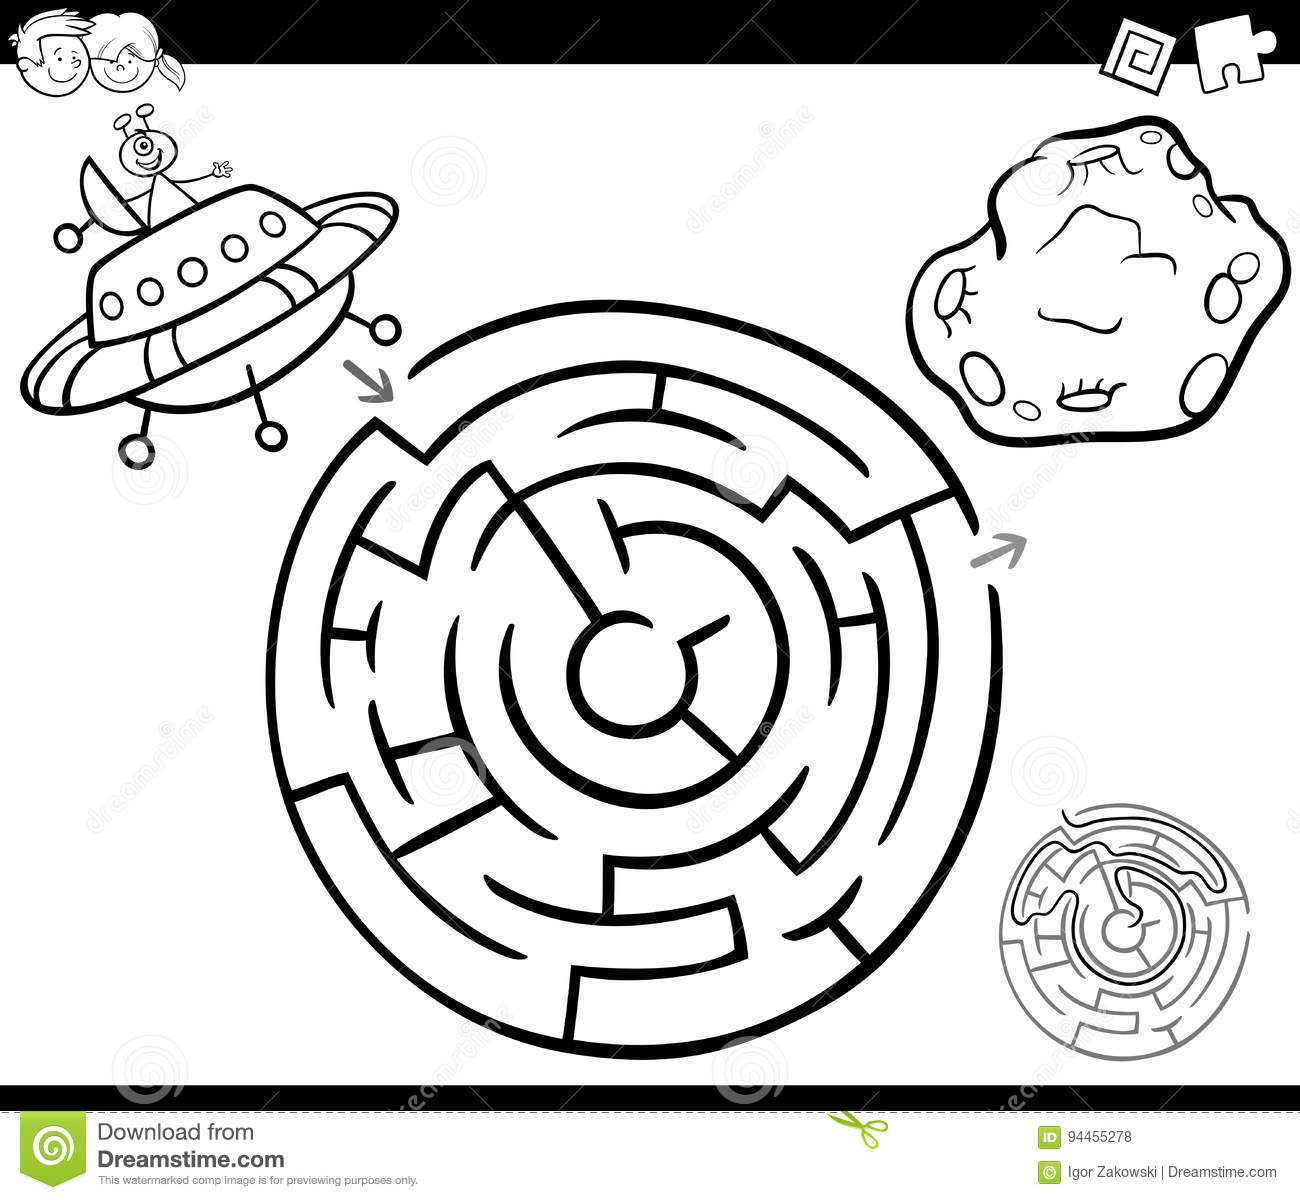 Maze With Ufo Coloring Page Stock Vector - Illustration of labyrinth ...